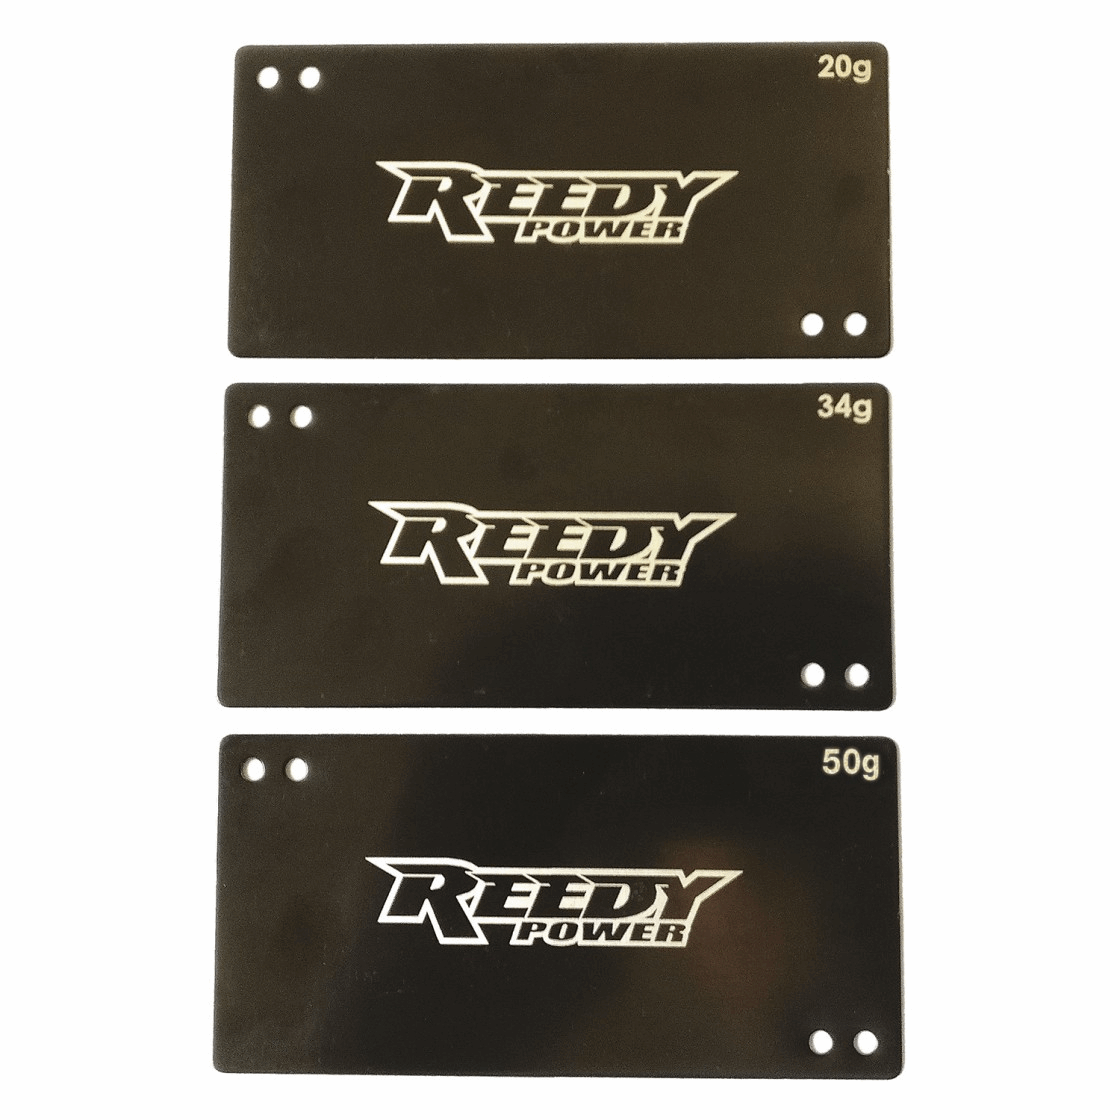 Reedy Shorty Battery Weight Set, 20g, 34g, 50g